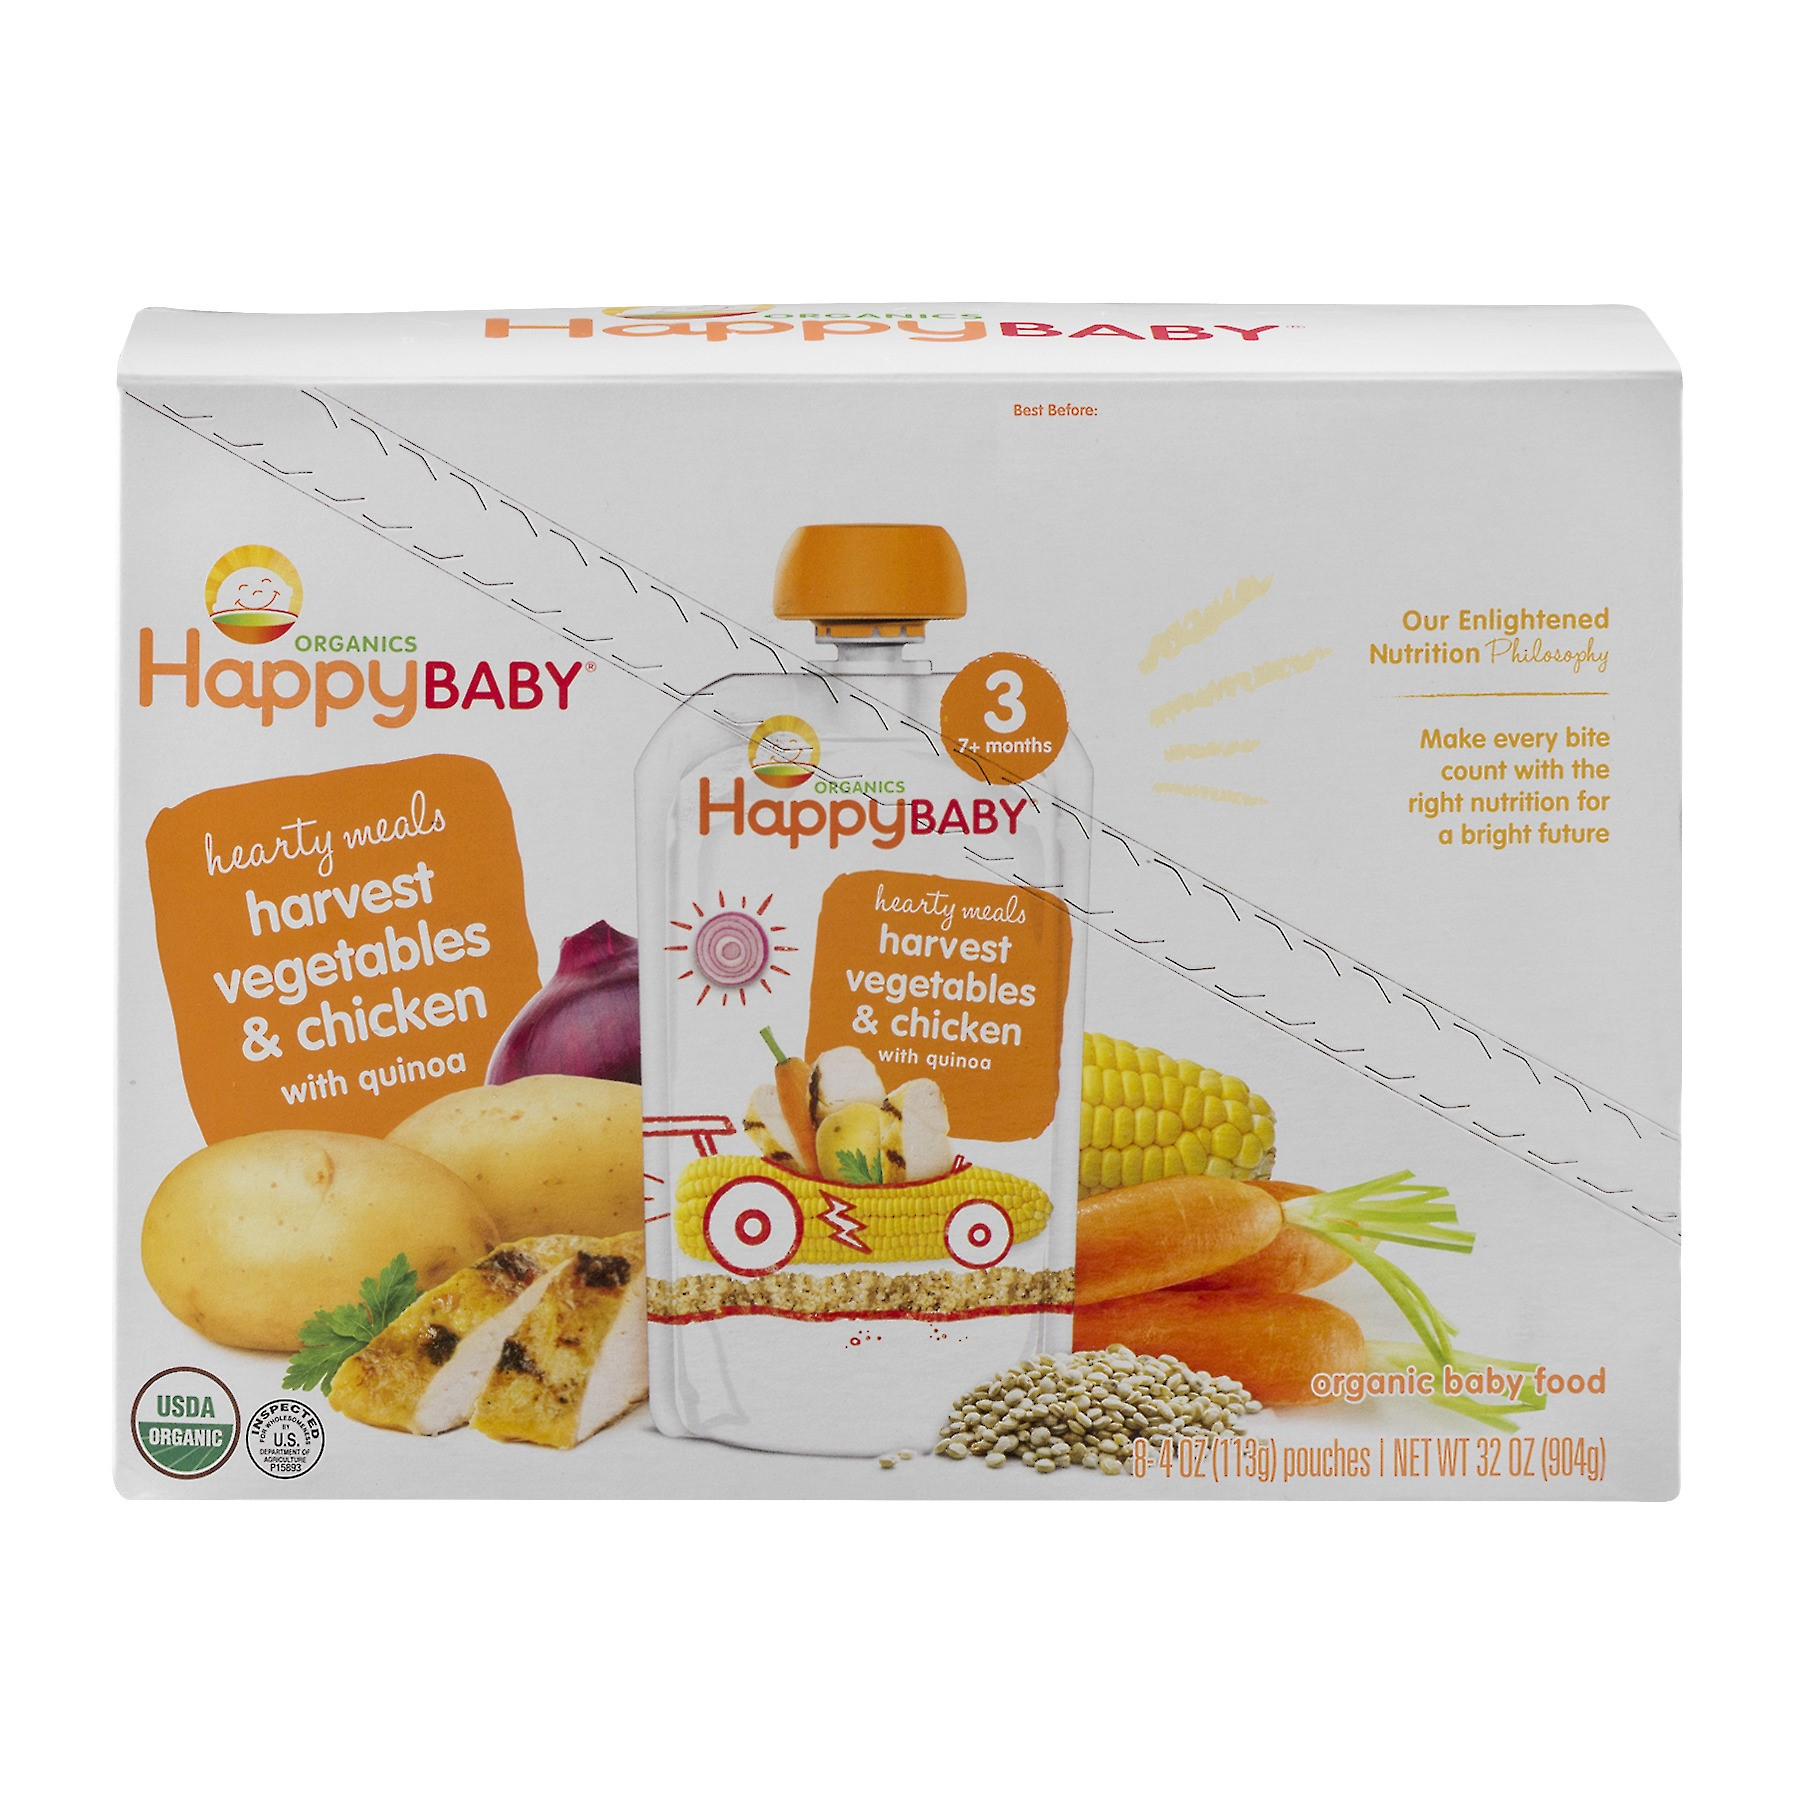 Happy Baby Heartu Meals, Stage 3, Organic Baby Food, Vegetables & Chicken with Quinoa - 4 oz